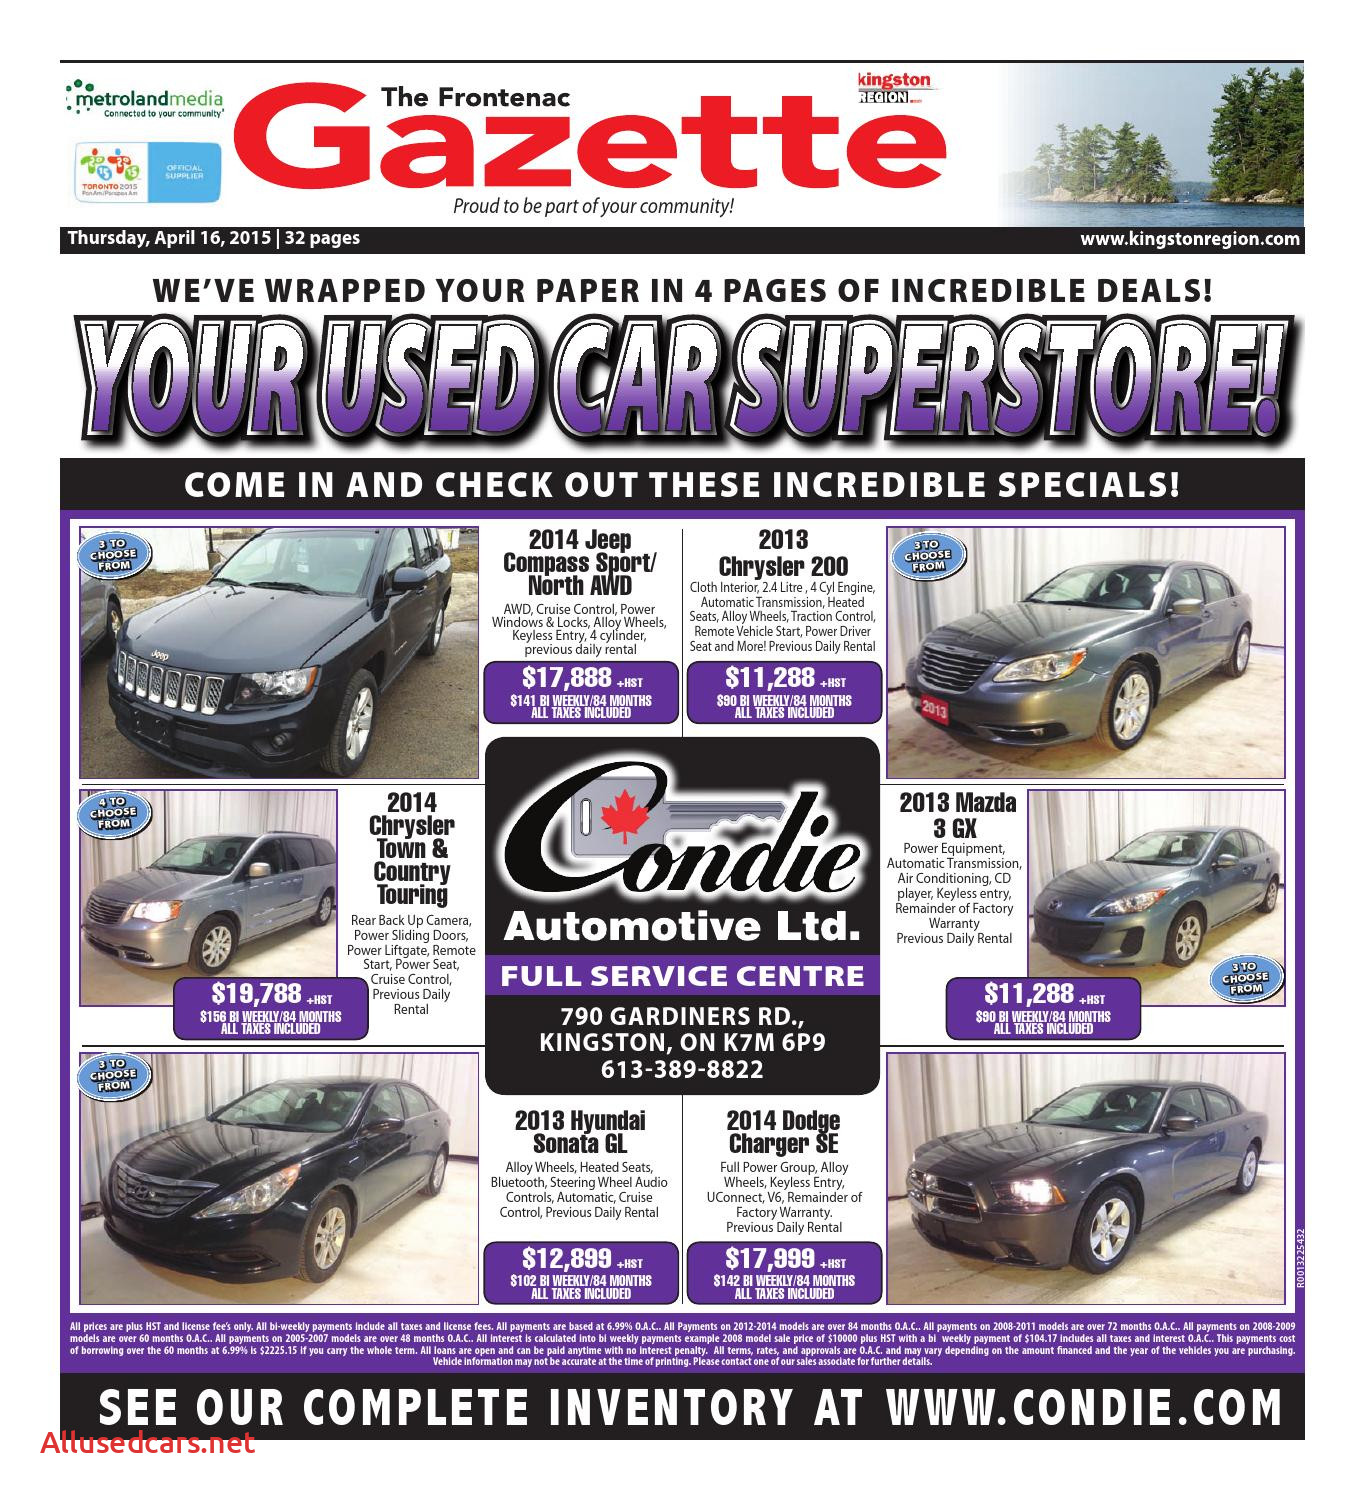 2013 Hyundai Veloster Luxury Frontenac by Metroland East Frontenac Gazette issuu